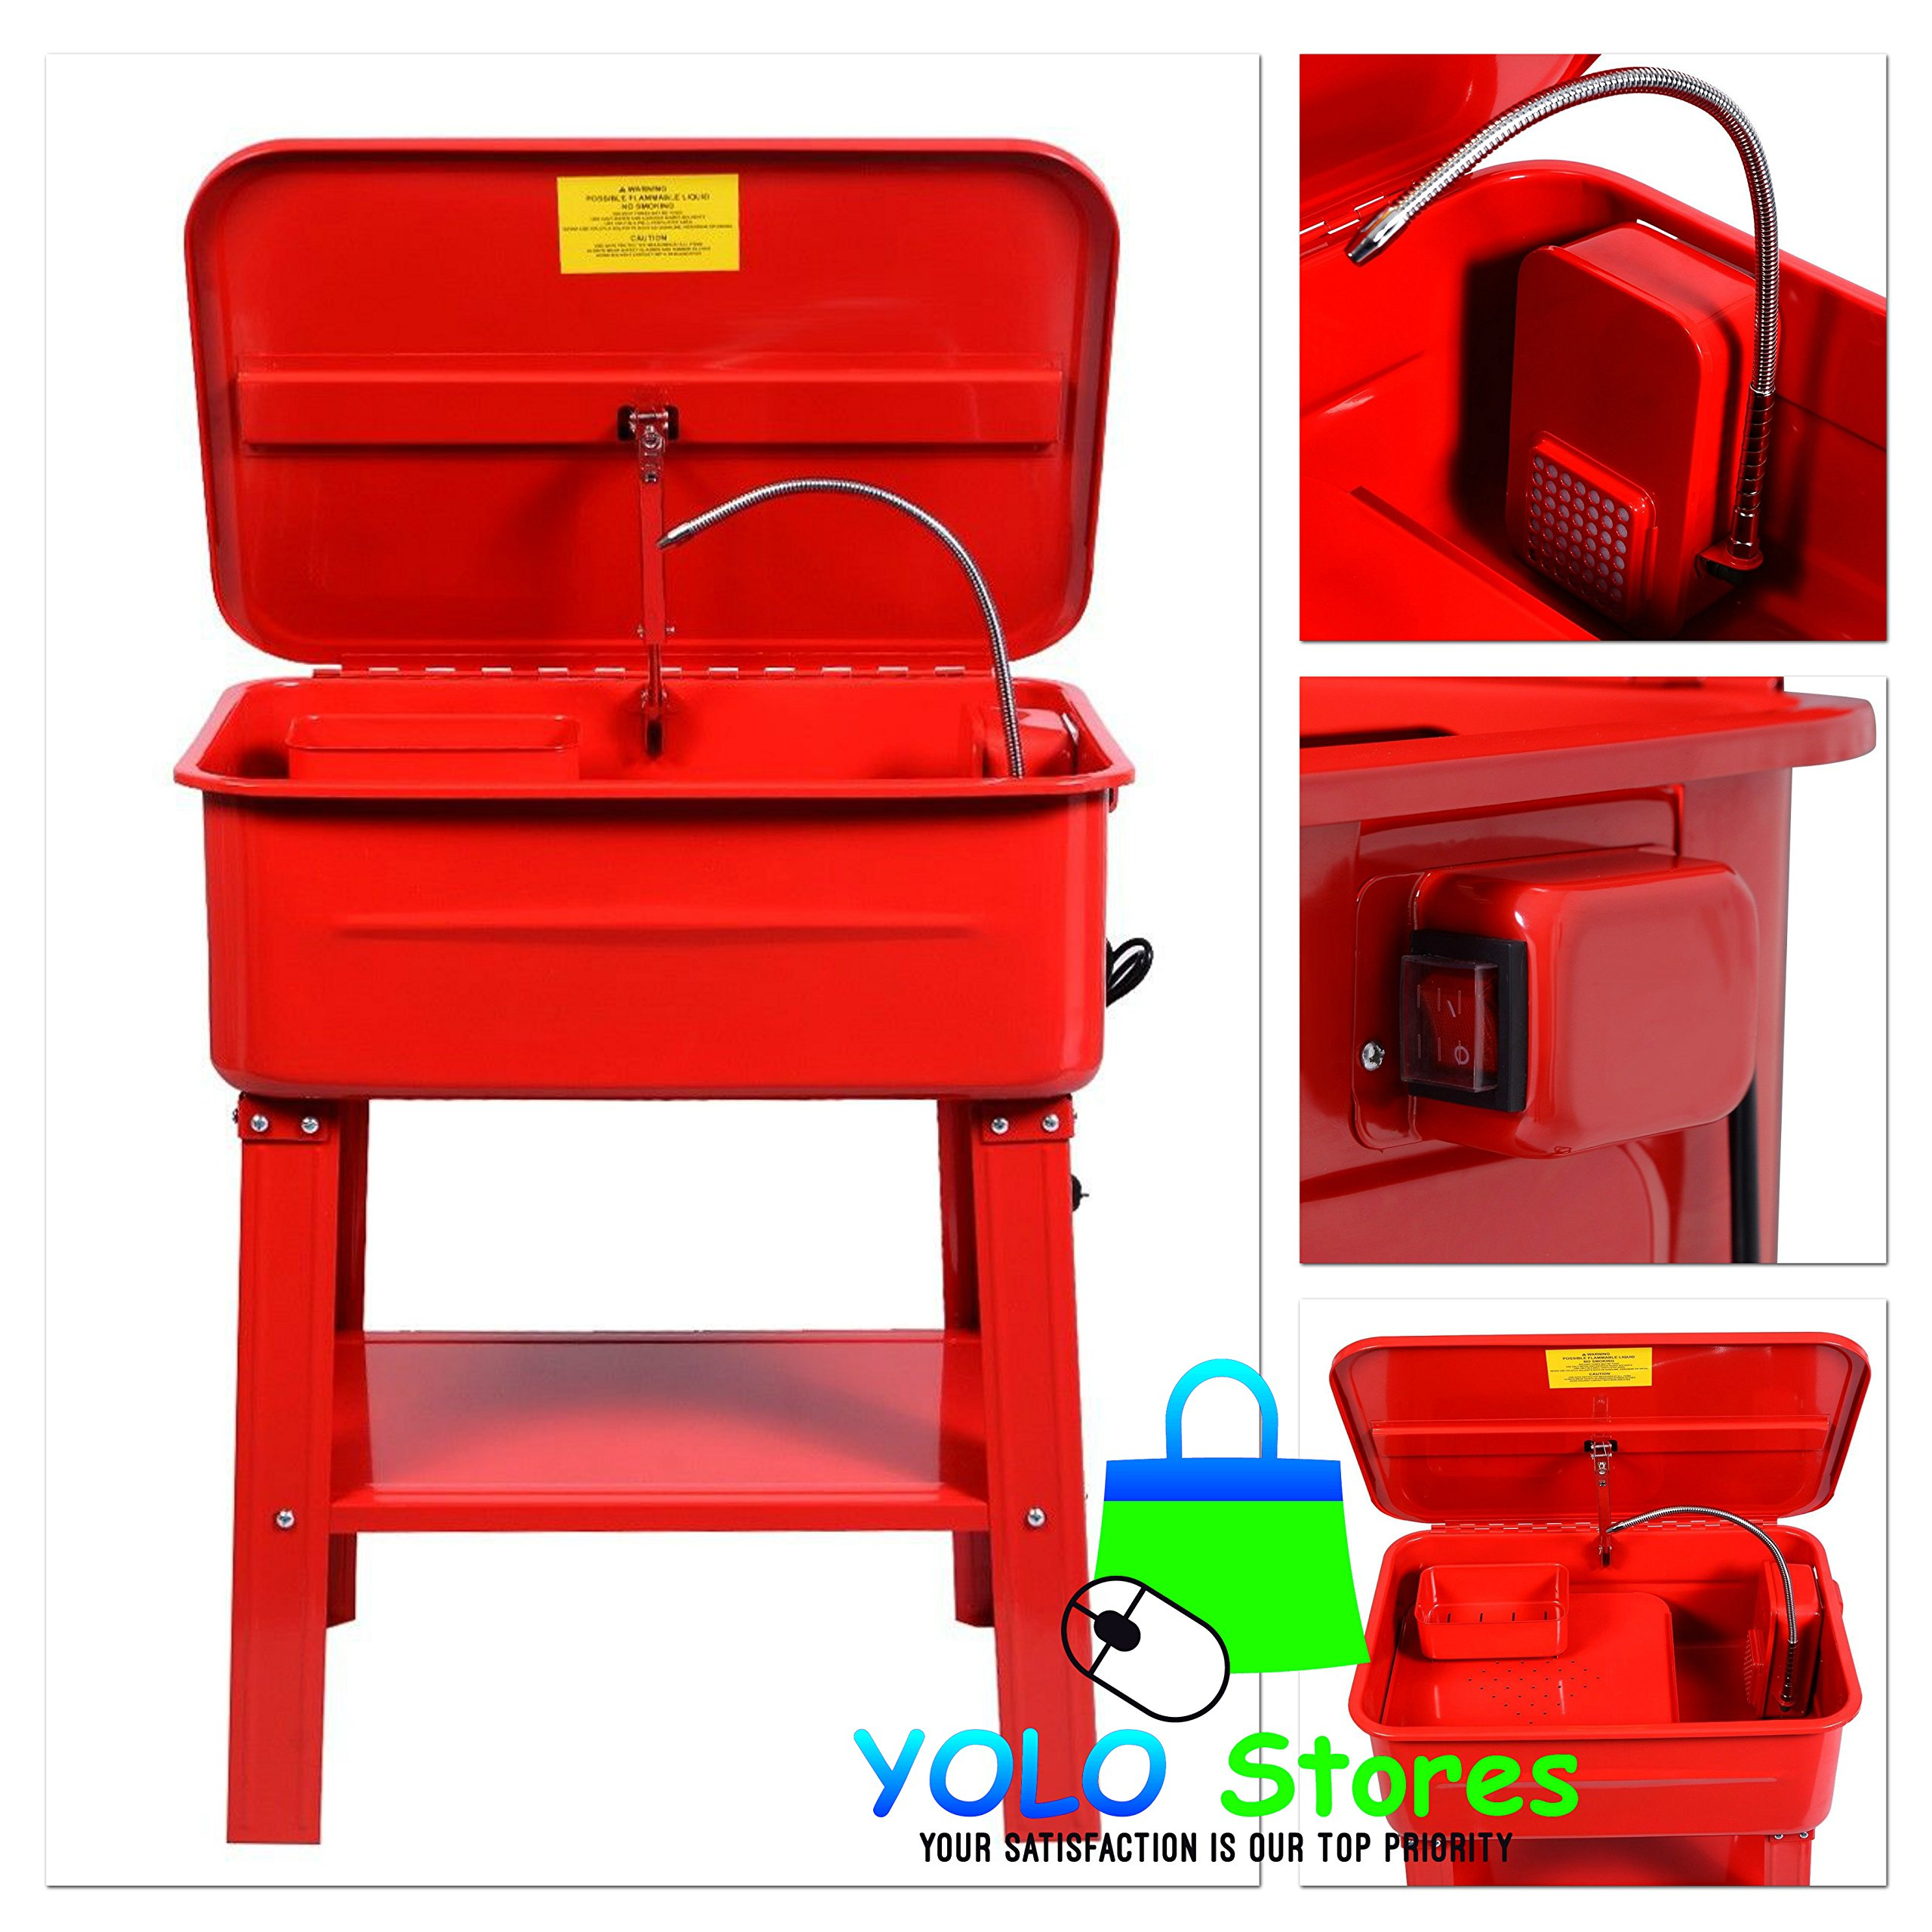 Automotive Parts Washer Cleaner Heavy Duty Electric Solvent Pump 20 Gallon Auto Tools By YOLO Stores by YOLO Stores (Image #1)